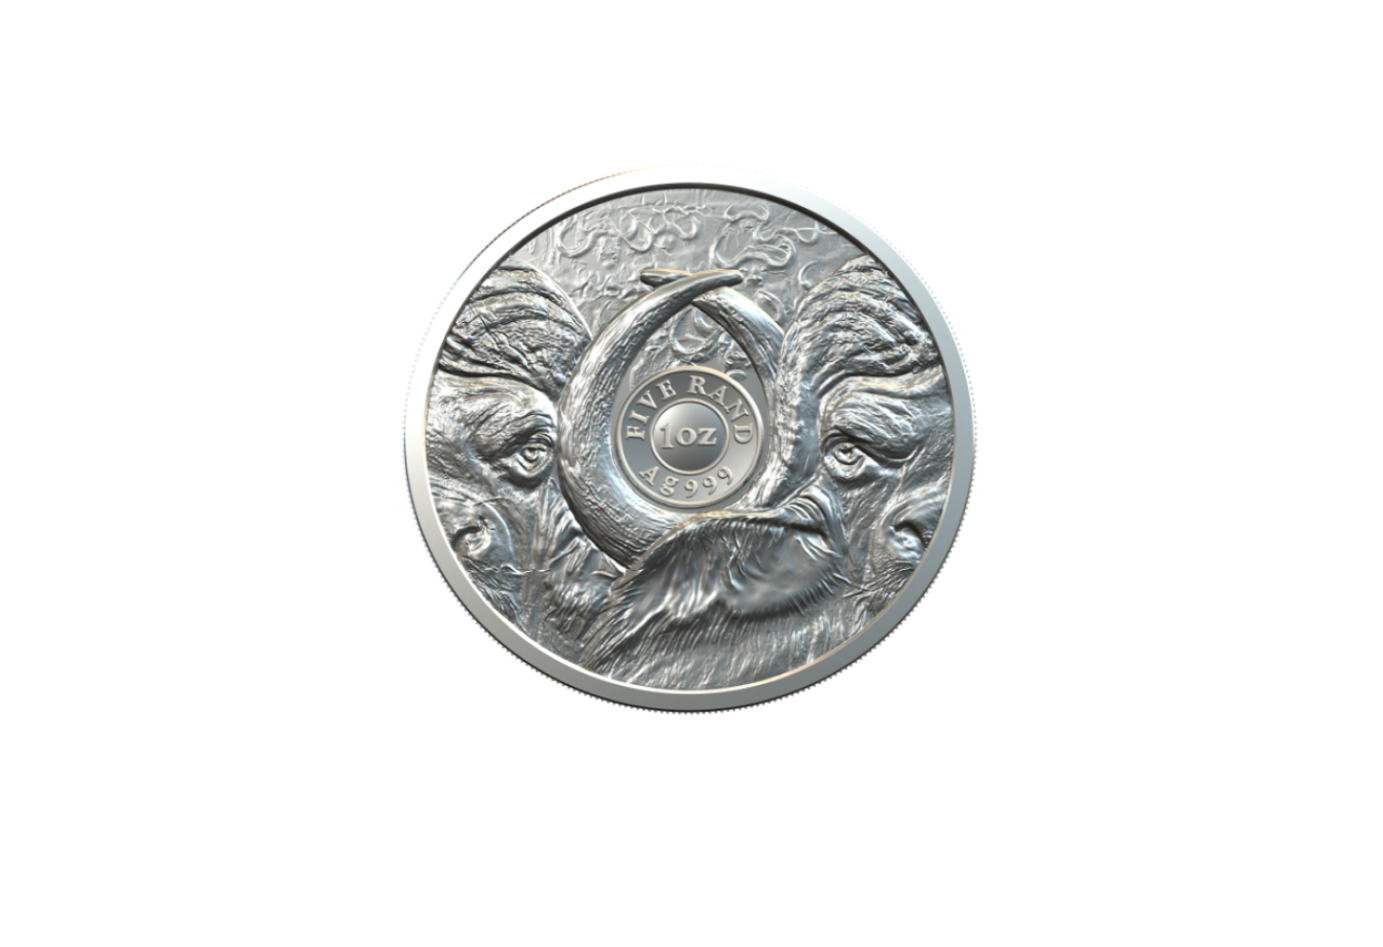 The 2021 south african mint's Buffalo coins